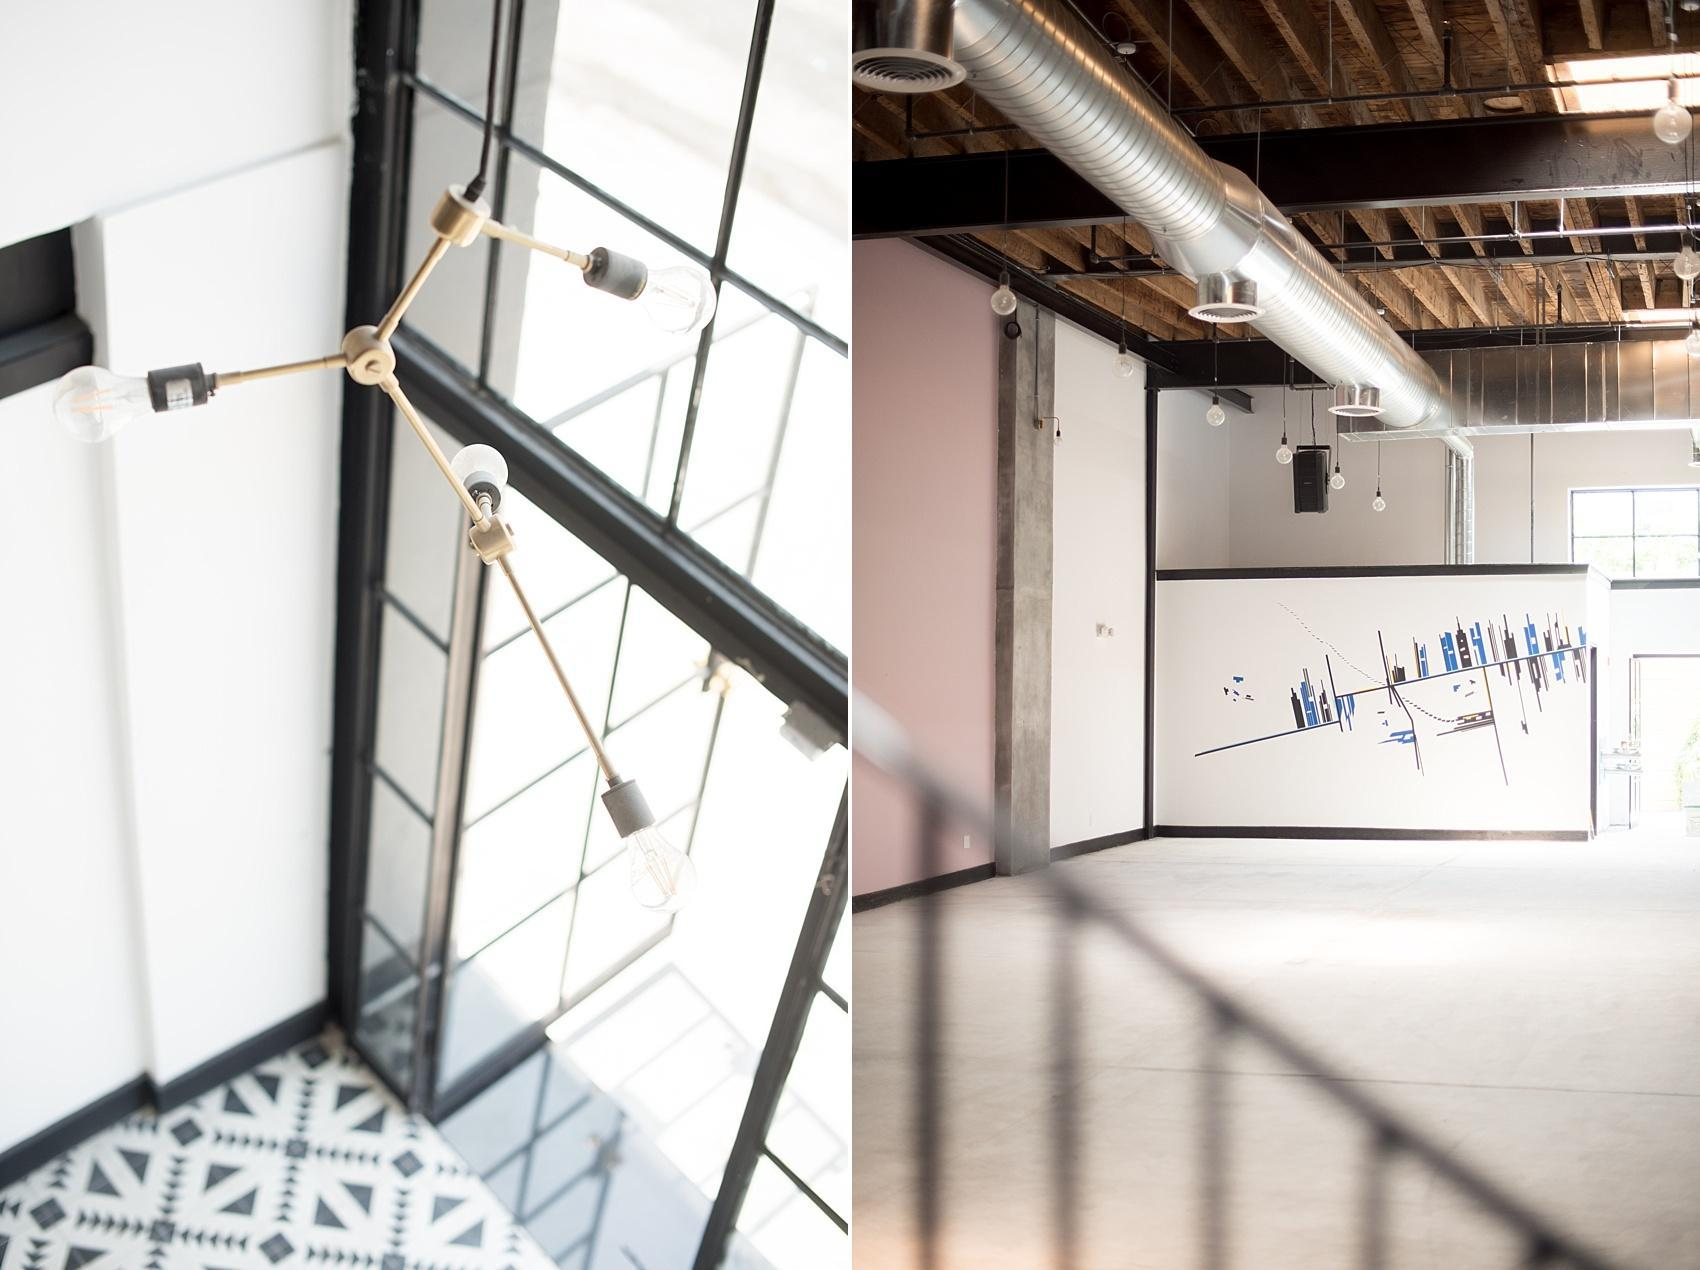 Mikkel Paige Photography, NYC wedding photographer, captures Brooklyn's event space, Dobbin St. with inviting black and white geometric tile entrance and open space plan.